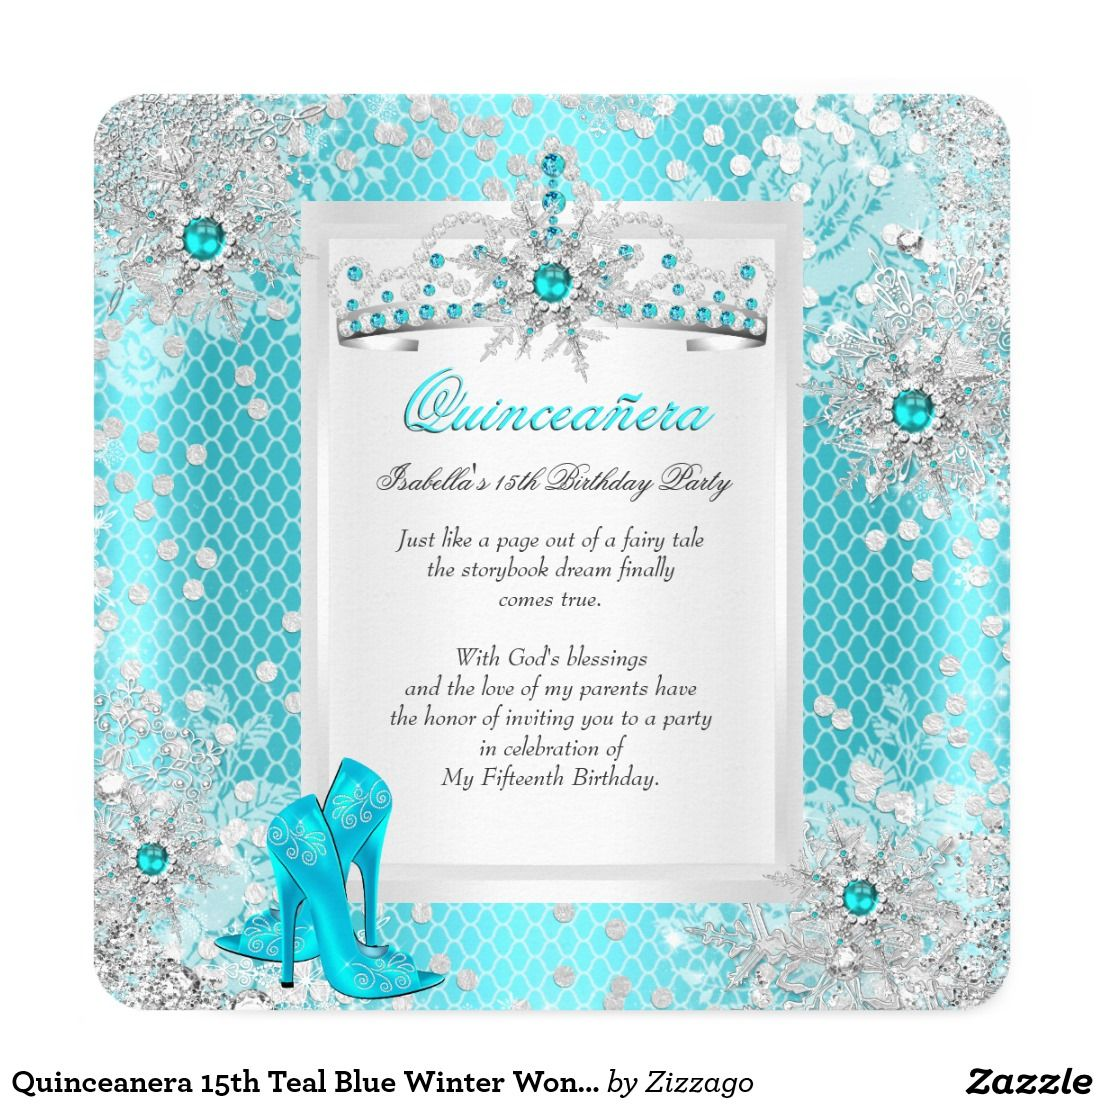 Quinceanera 15th Teal Blue Winter